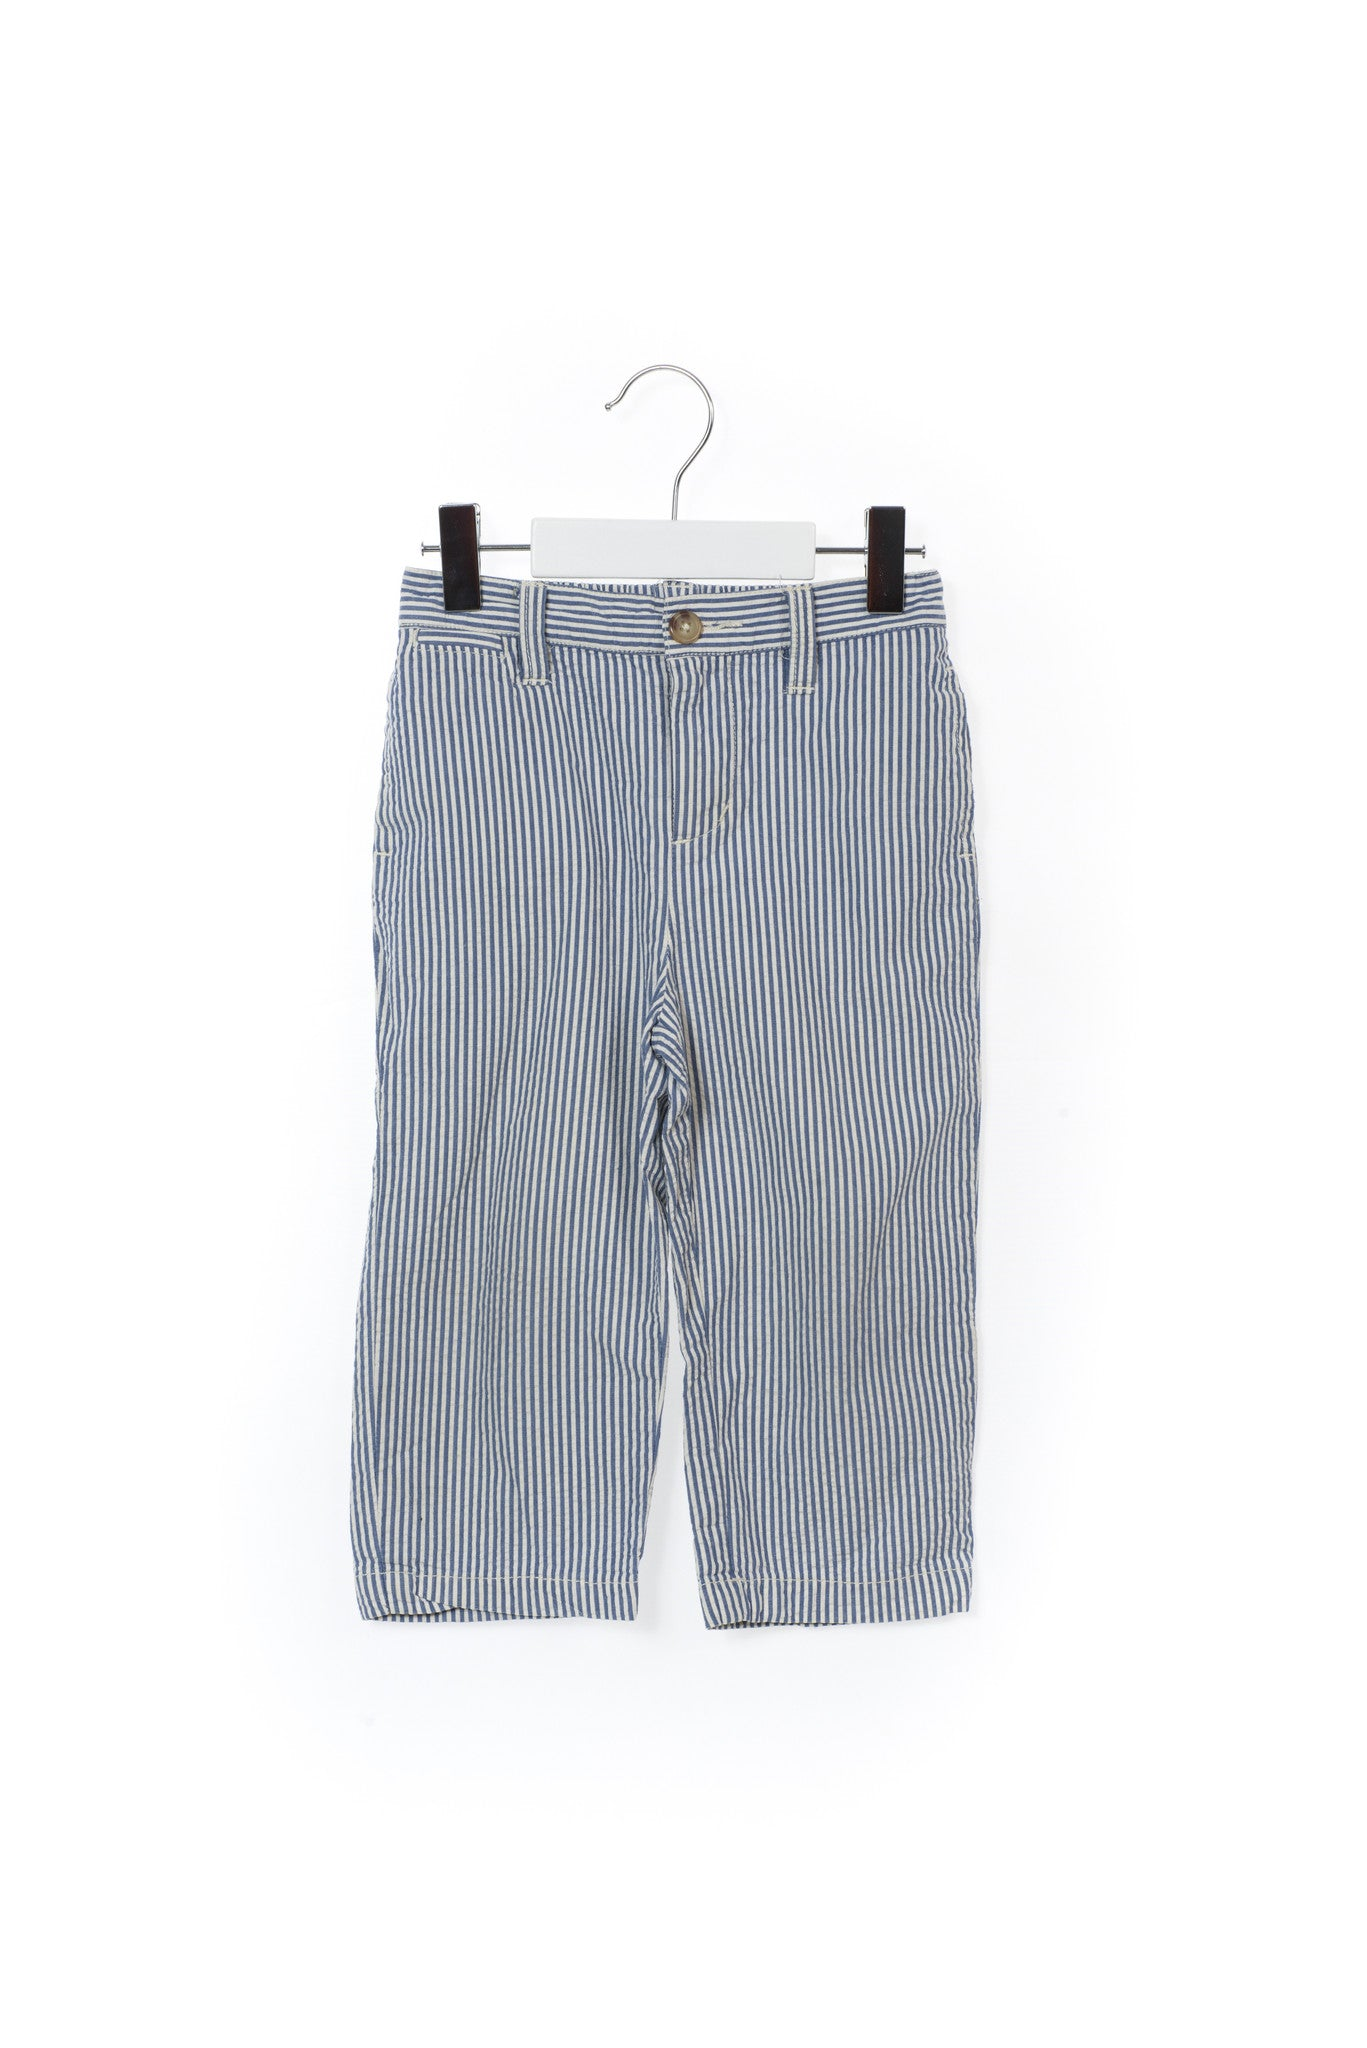 Pants 2T, Polo Ralph Lauren at Retykle - Online Baby & Kids Clothing Up to 90% Off